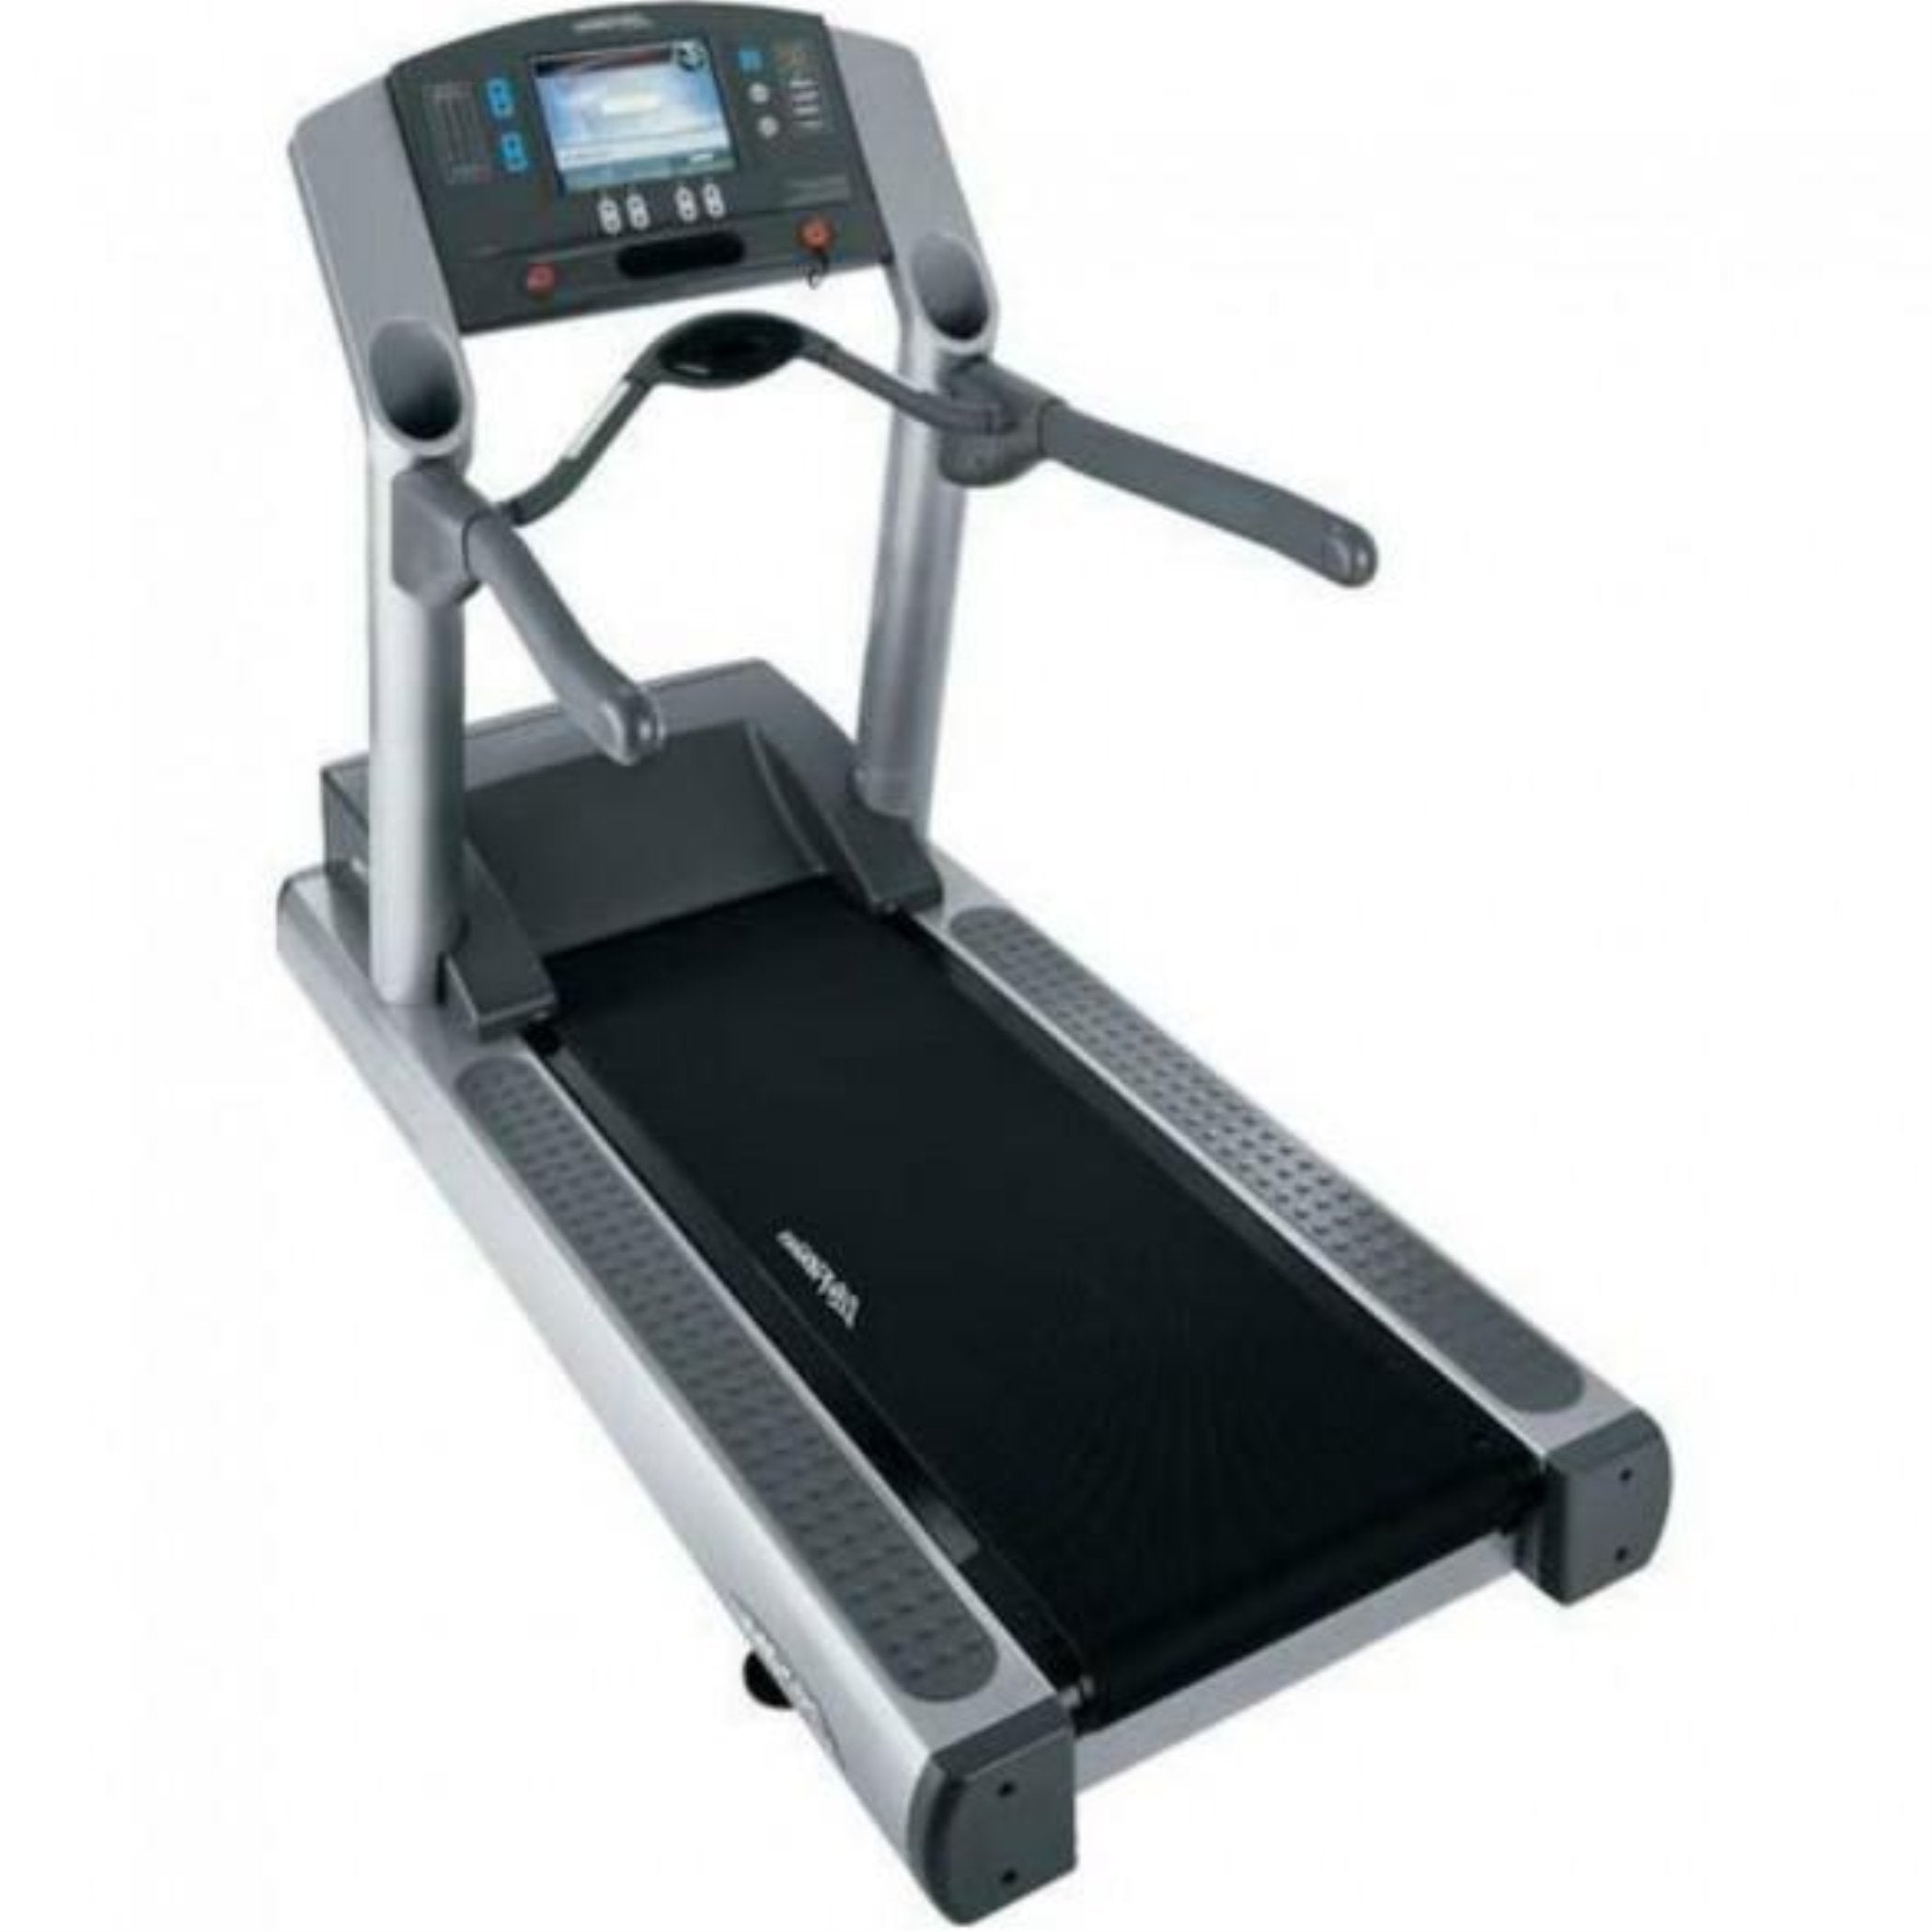 Life Fitness Treadmill Top Speed: 70% Off At Cost Cutter Fitness